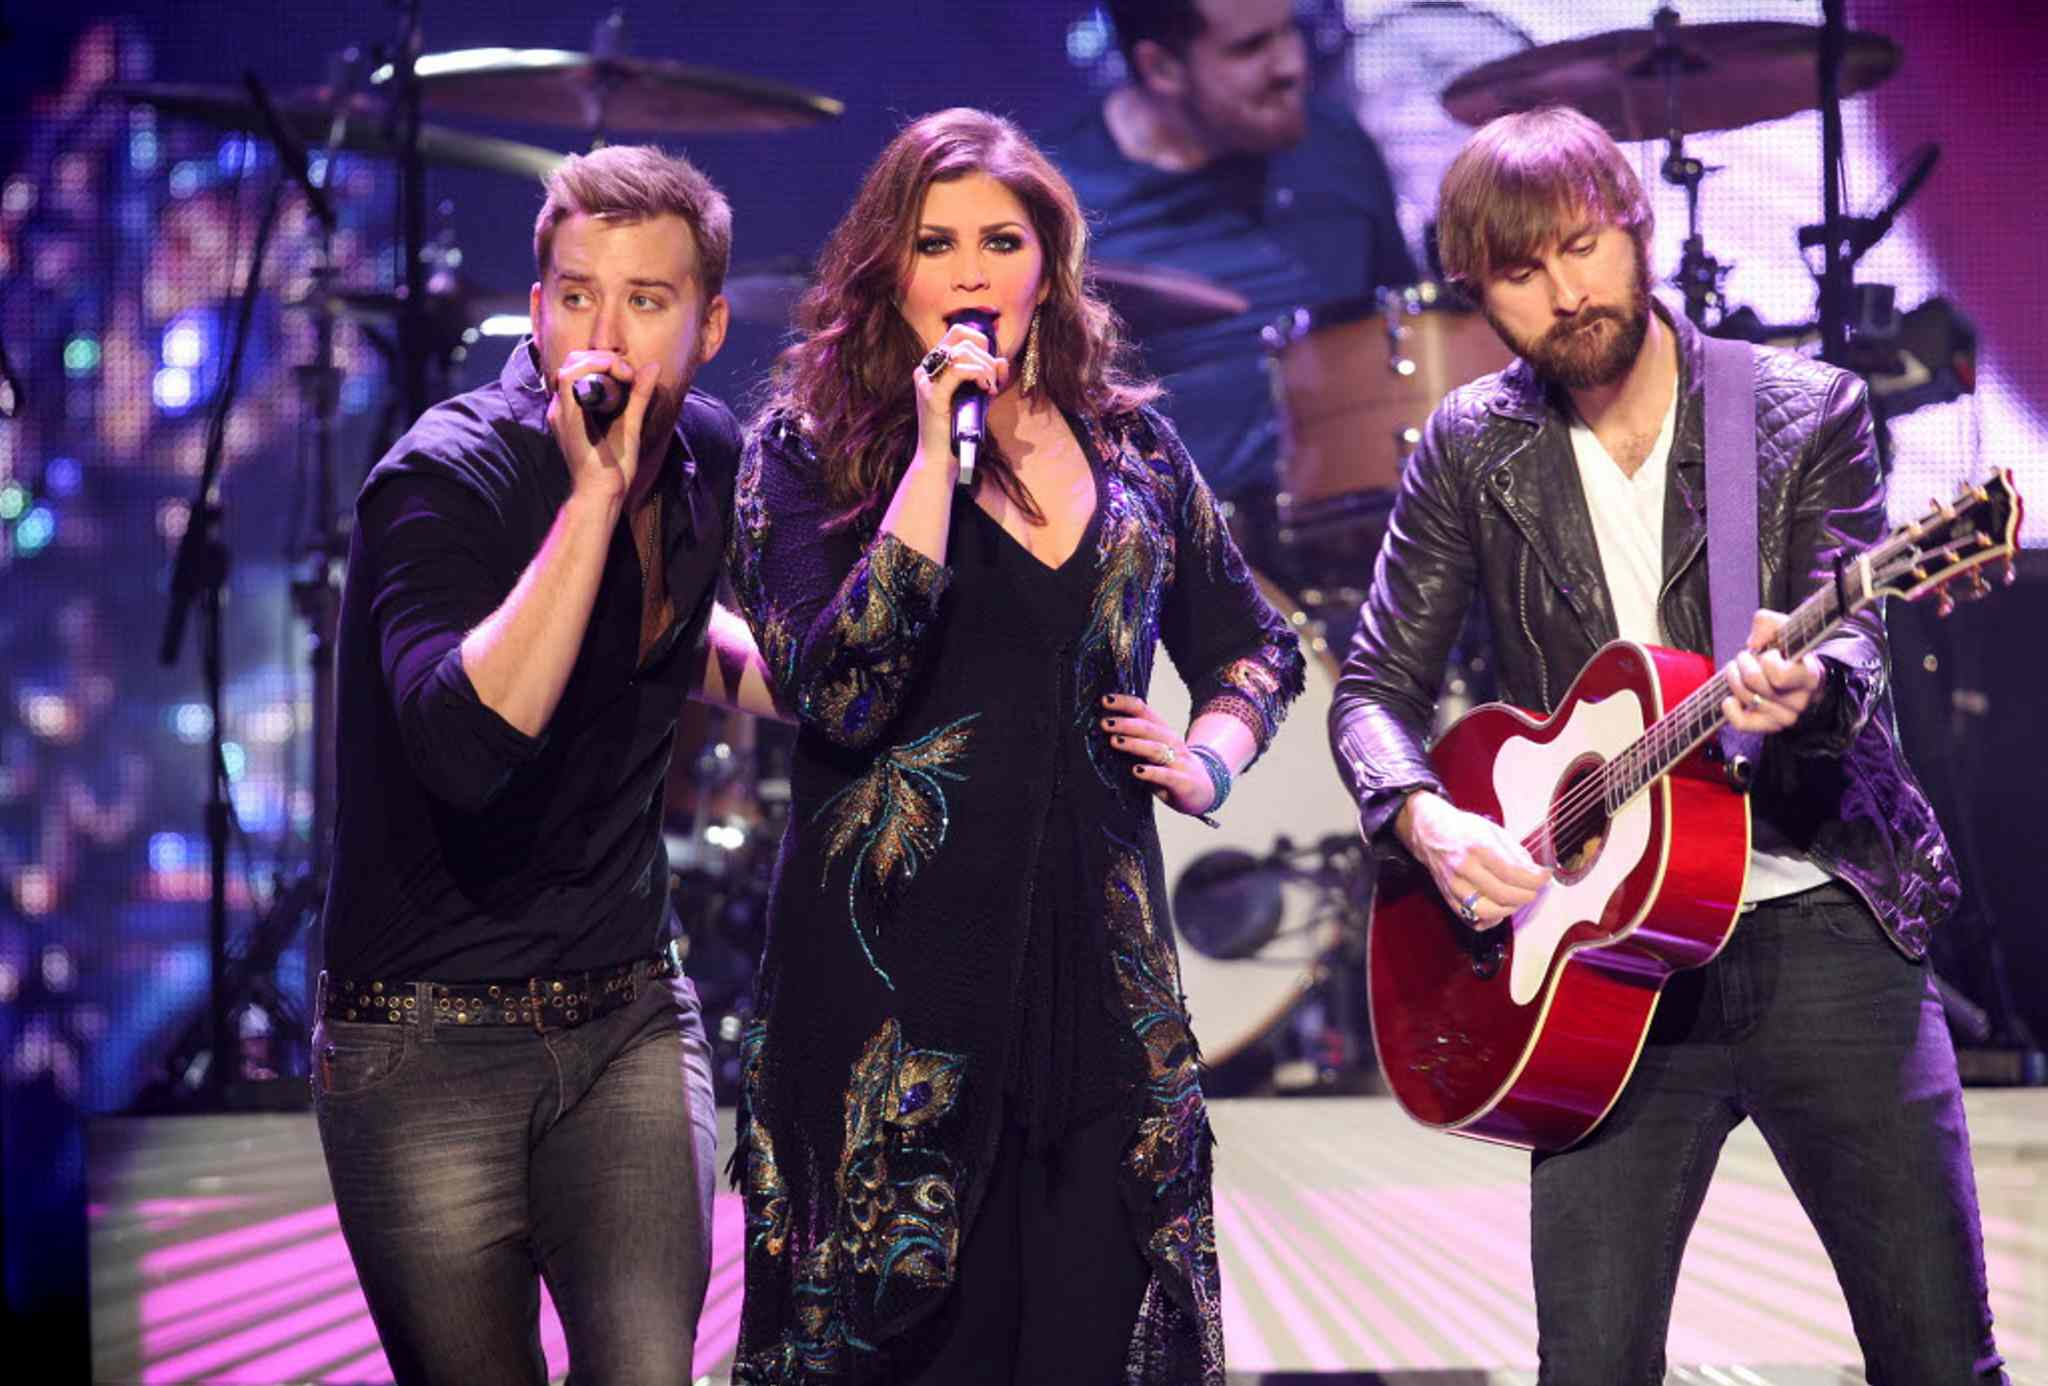 Lady Antebellum performs at the MTS Centre Wednesday evening to an enthusiastic Winnipeg crowd.